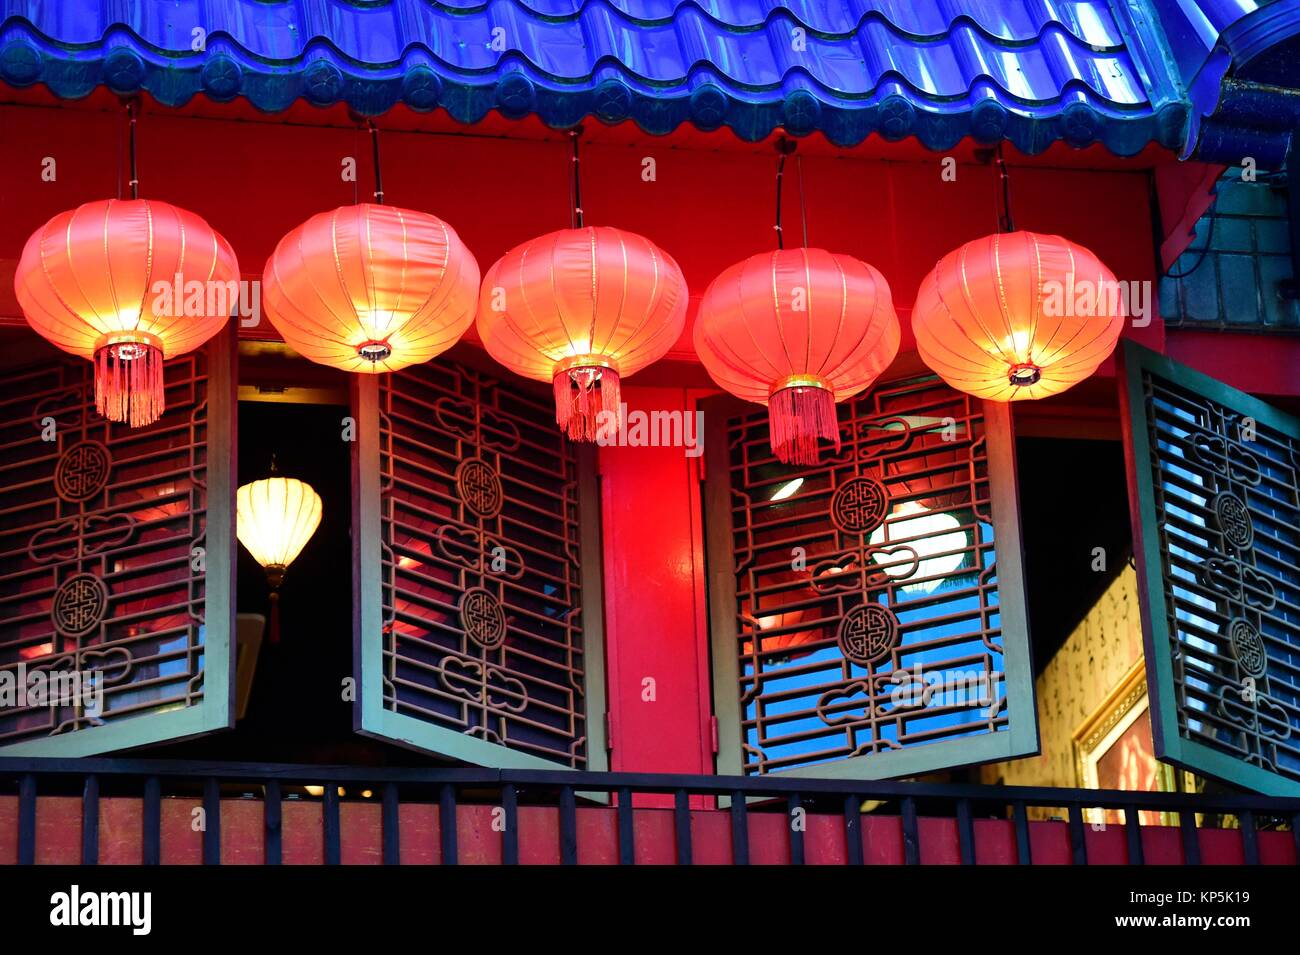 Chinese lanterns hanging in a street of Jeju, Jeju island, South Korea. - Stock Image